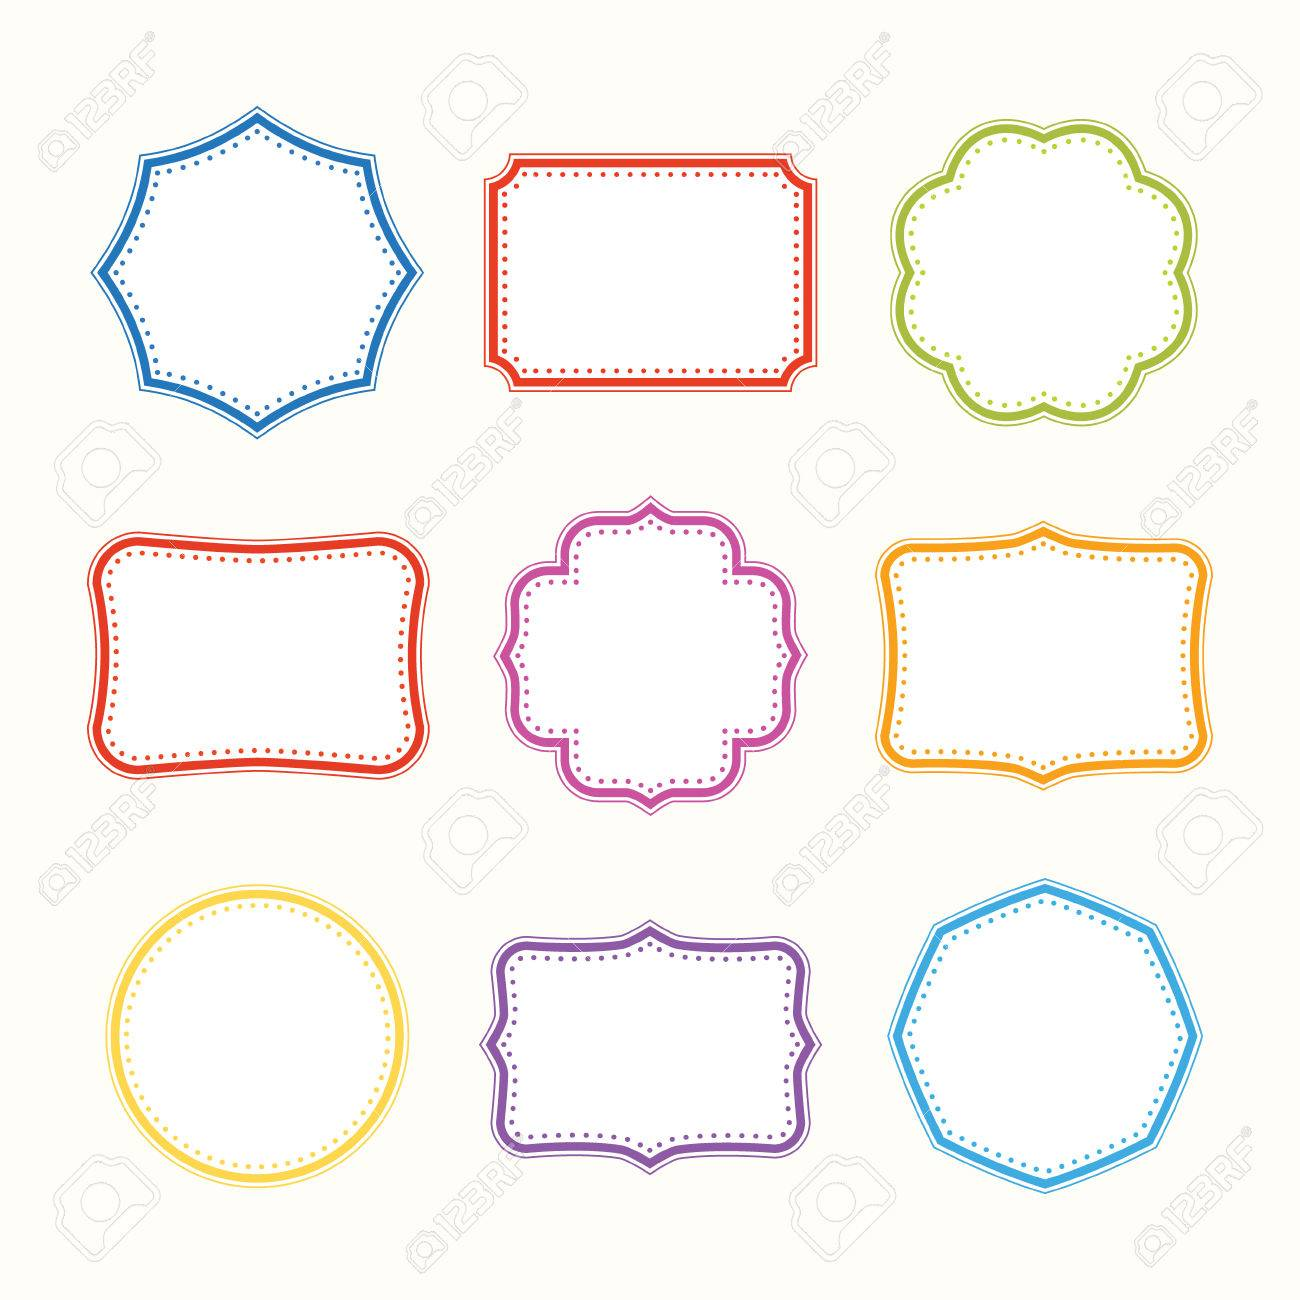 colorful frames vector set royalty free cliparts vectors and stock rh 123rf com glasses vector flames vector free